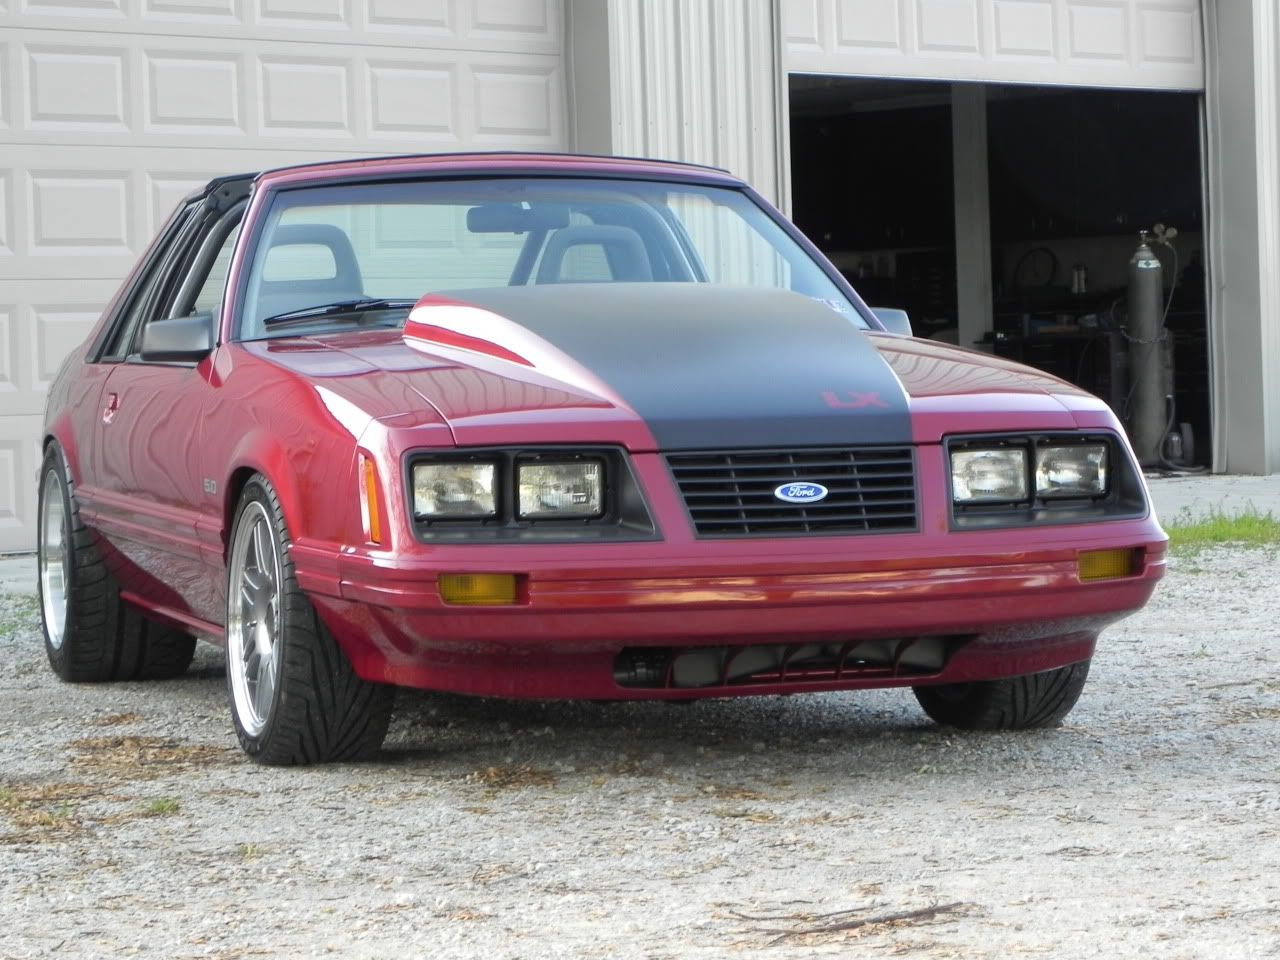 84 mustang started the 84 t top coupe page 26 mustang forums at stangnet